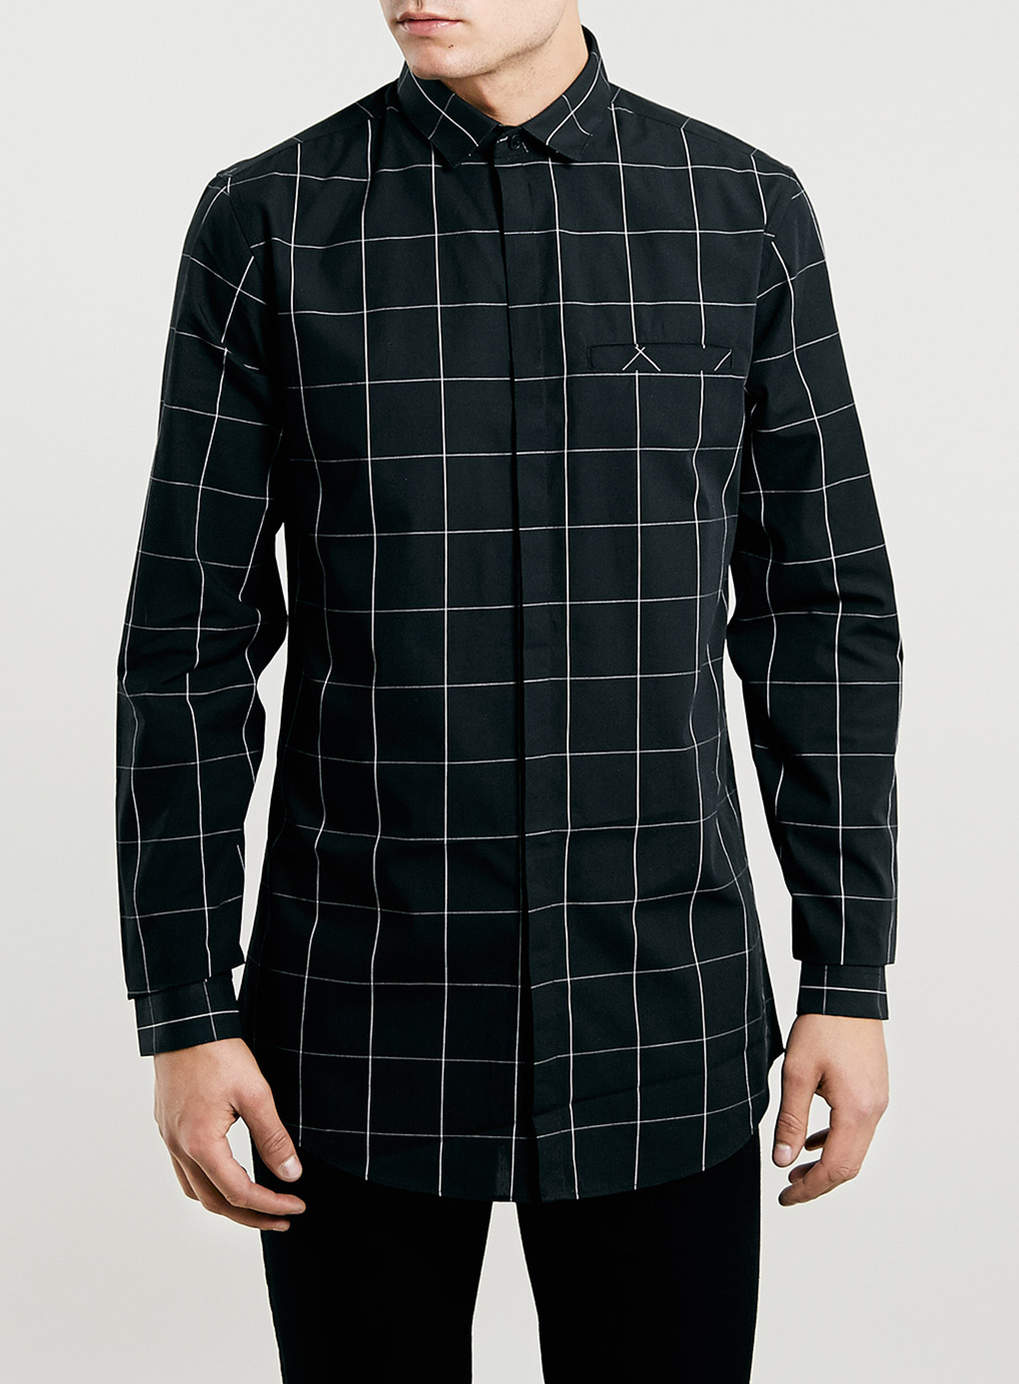 Black Check Longline Shirt - Men's Shirts - Clothing